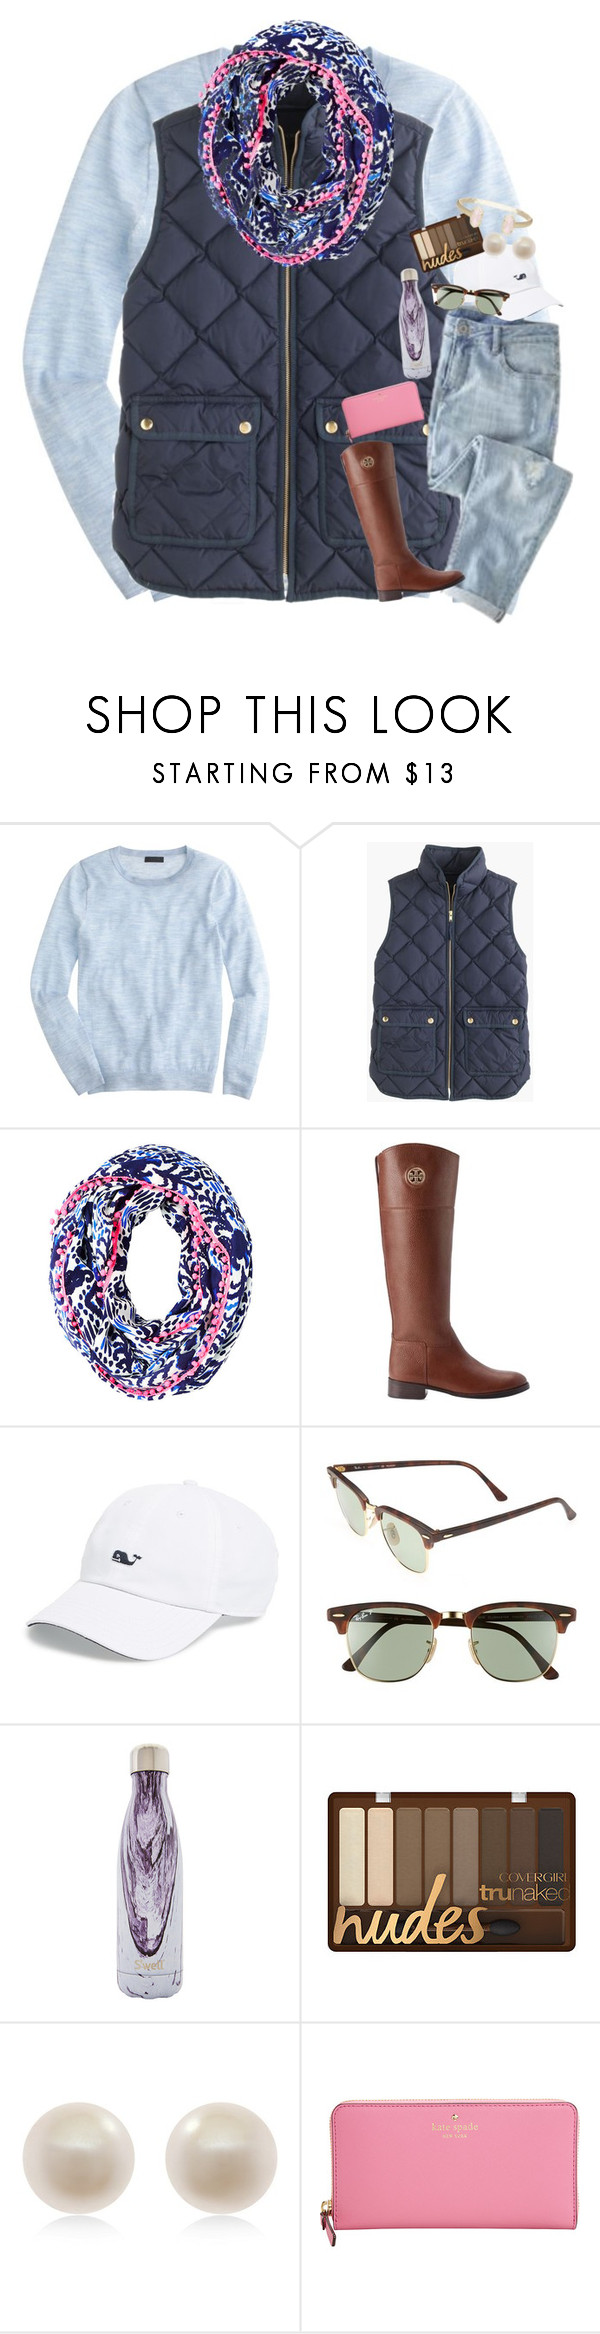 """""""One of the last Winter sets!! Summer here we come!"""" by haileymartin12 ❤ liked on Polyvore featuring J.Crew, Lilly Pulitzer, Tory Burch, Vineyard Vines, Ray-Ban, S'well, Links of London and Kate Spade"""